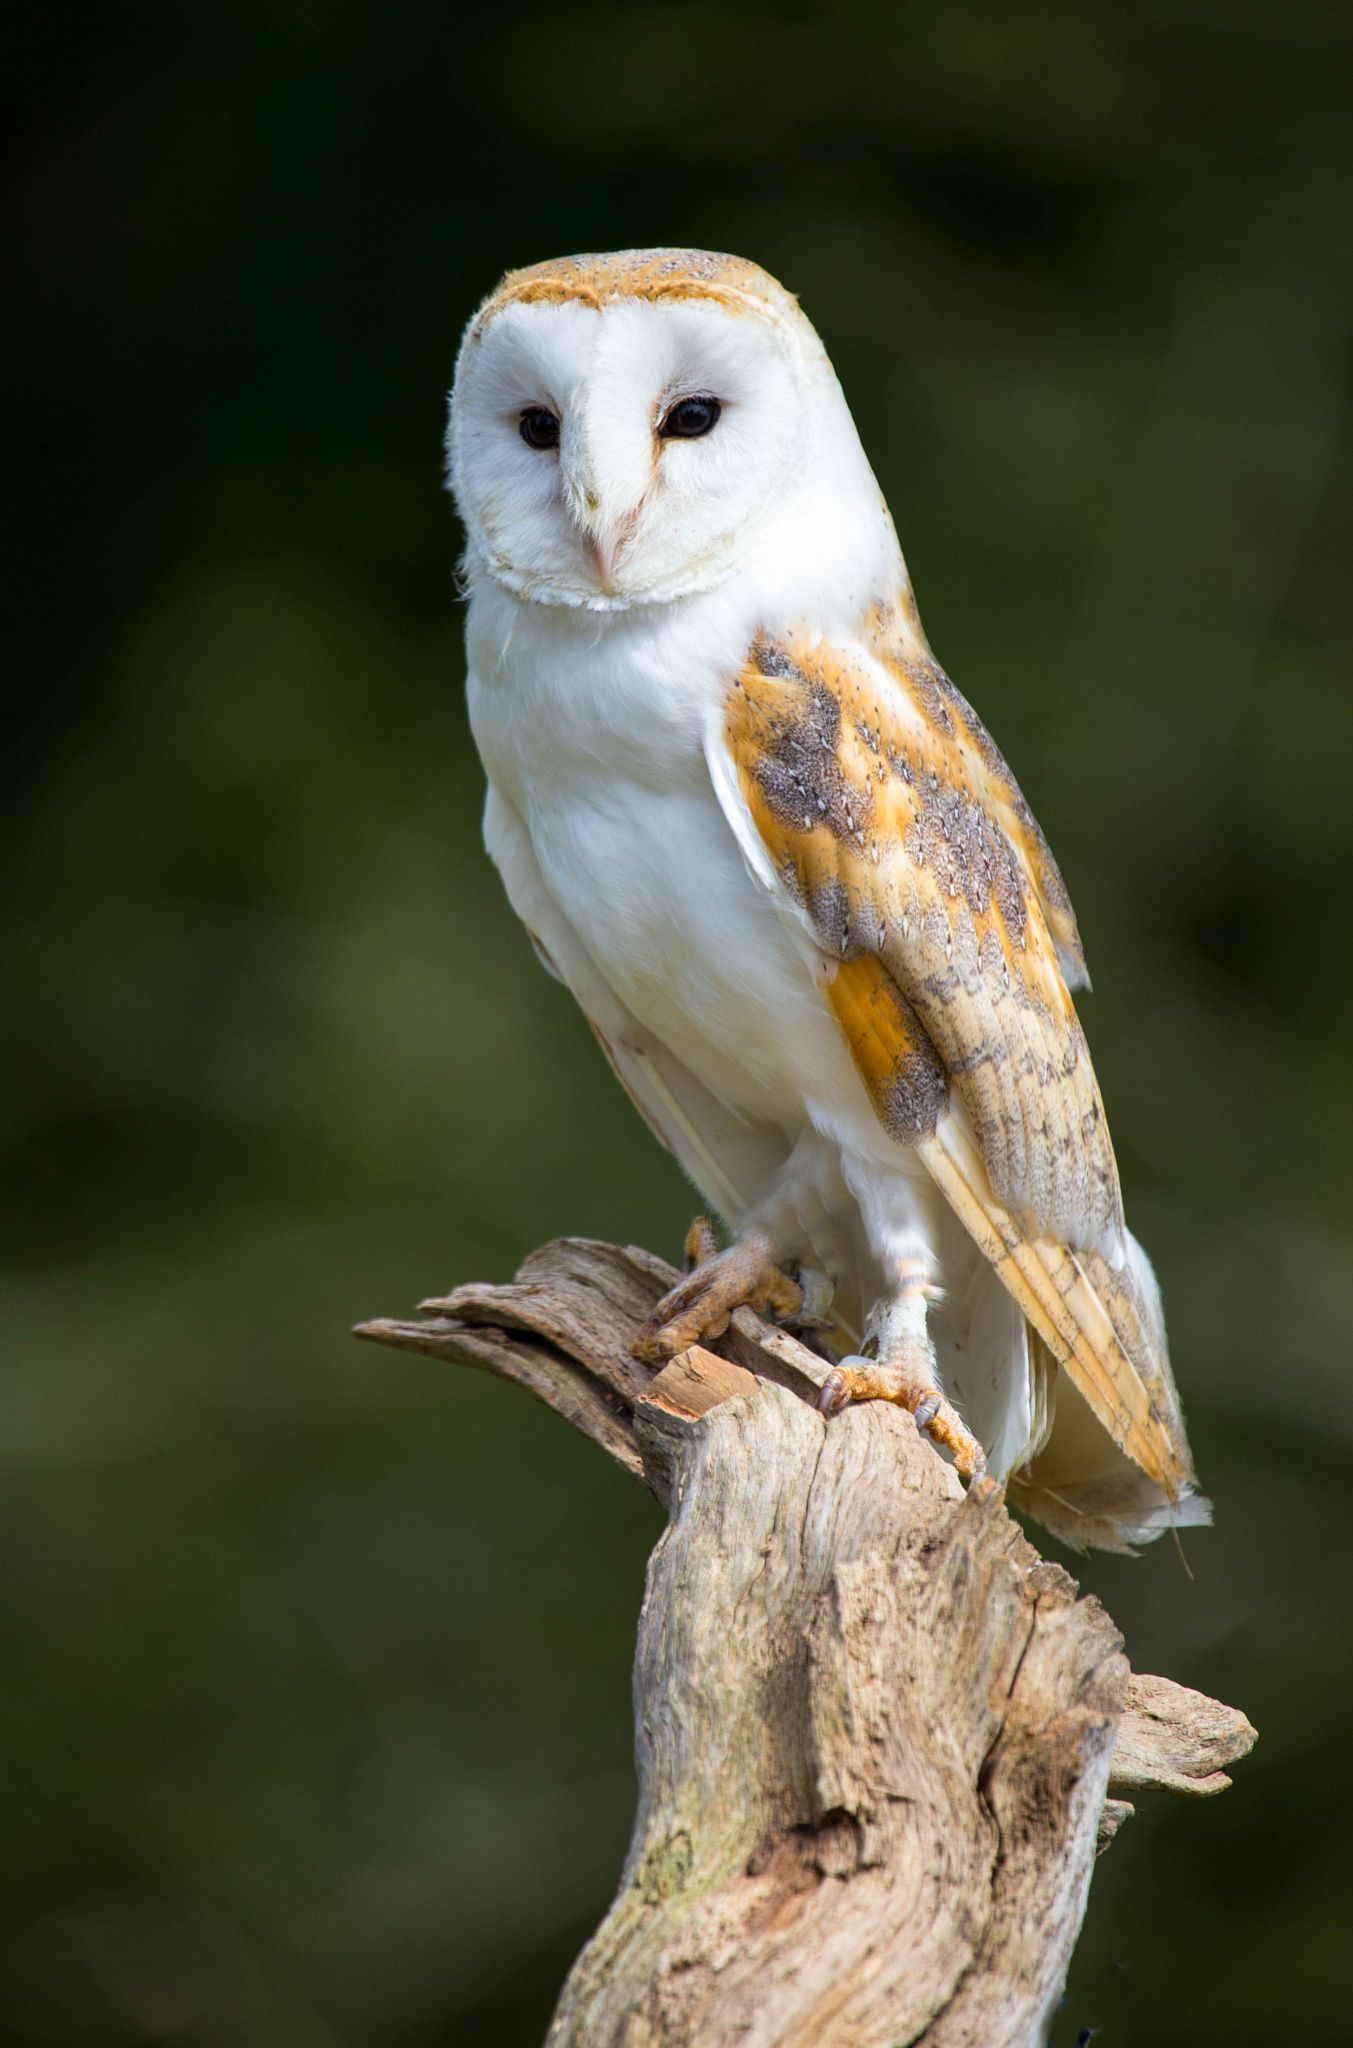 Barn owl 8x10 bird photograph wildlife nature photo wild animal a beautiful barn owl title owl by john davies on 500px buycottarizona